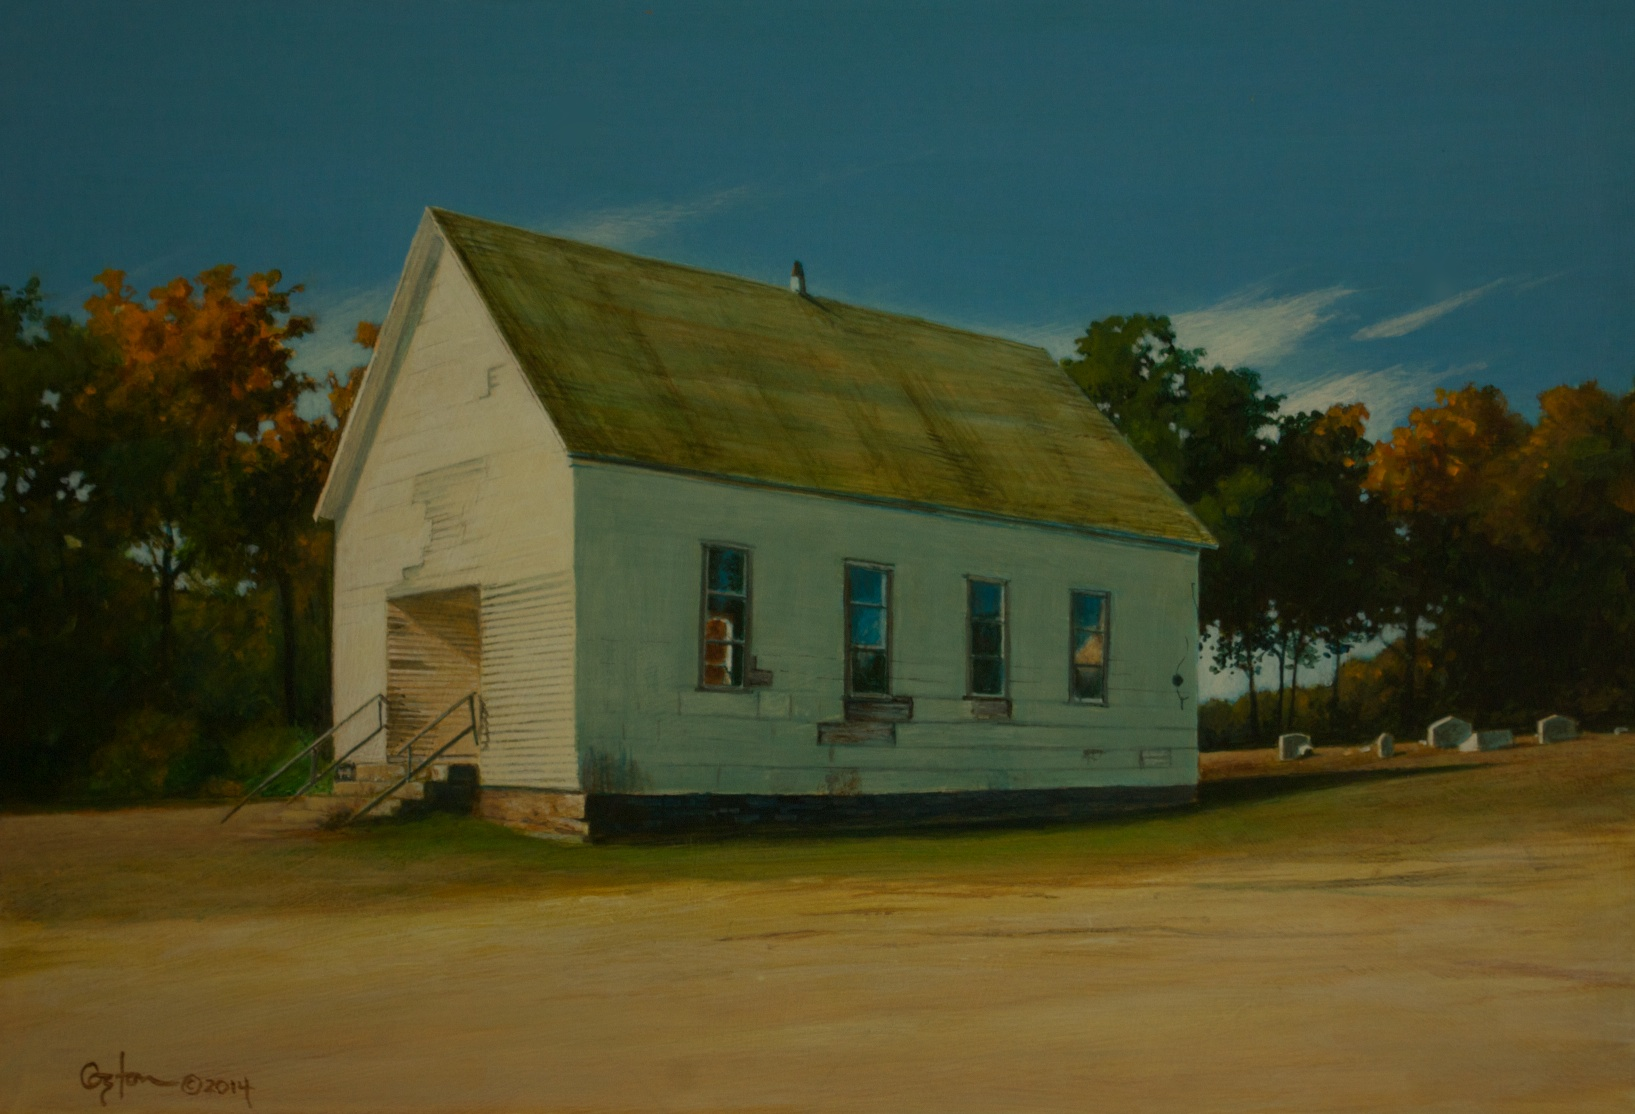 Zinnamon Church, Daniel Coston, 2014